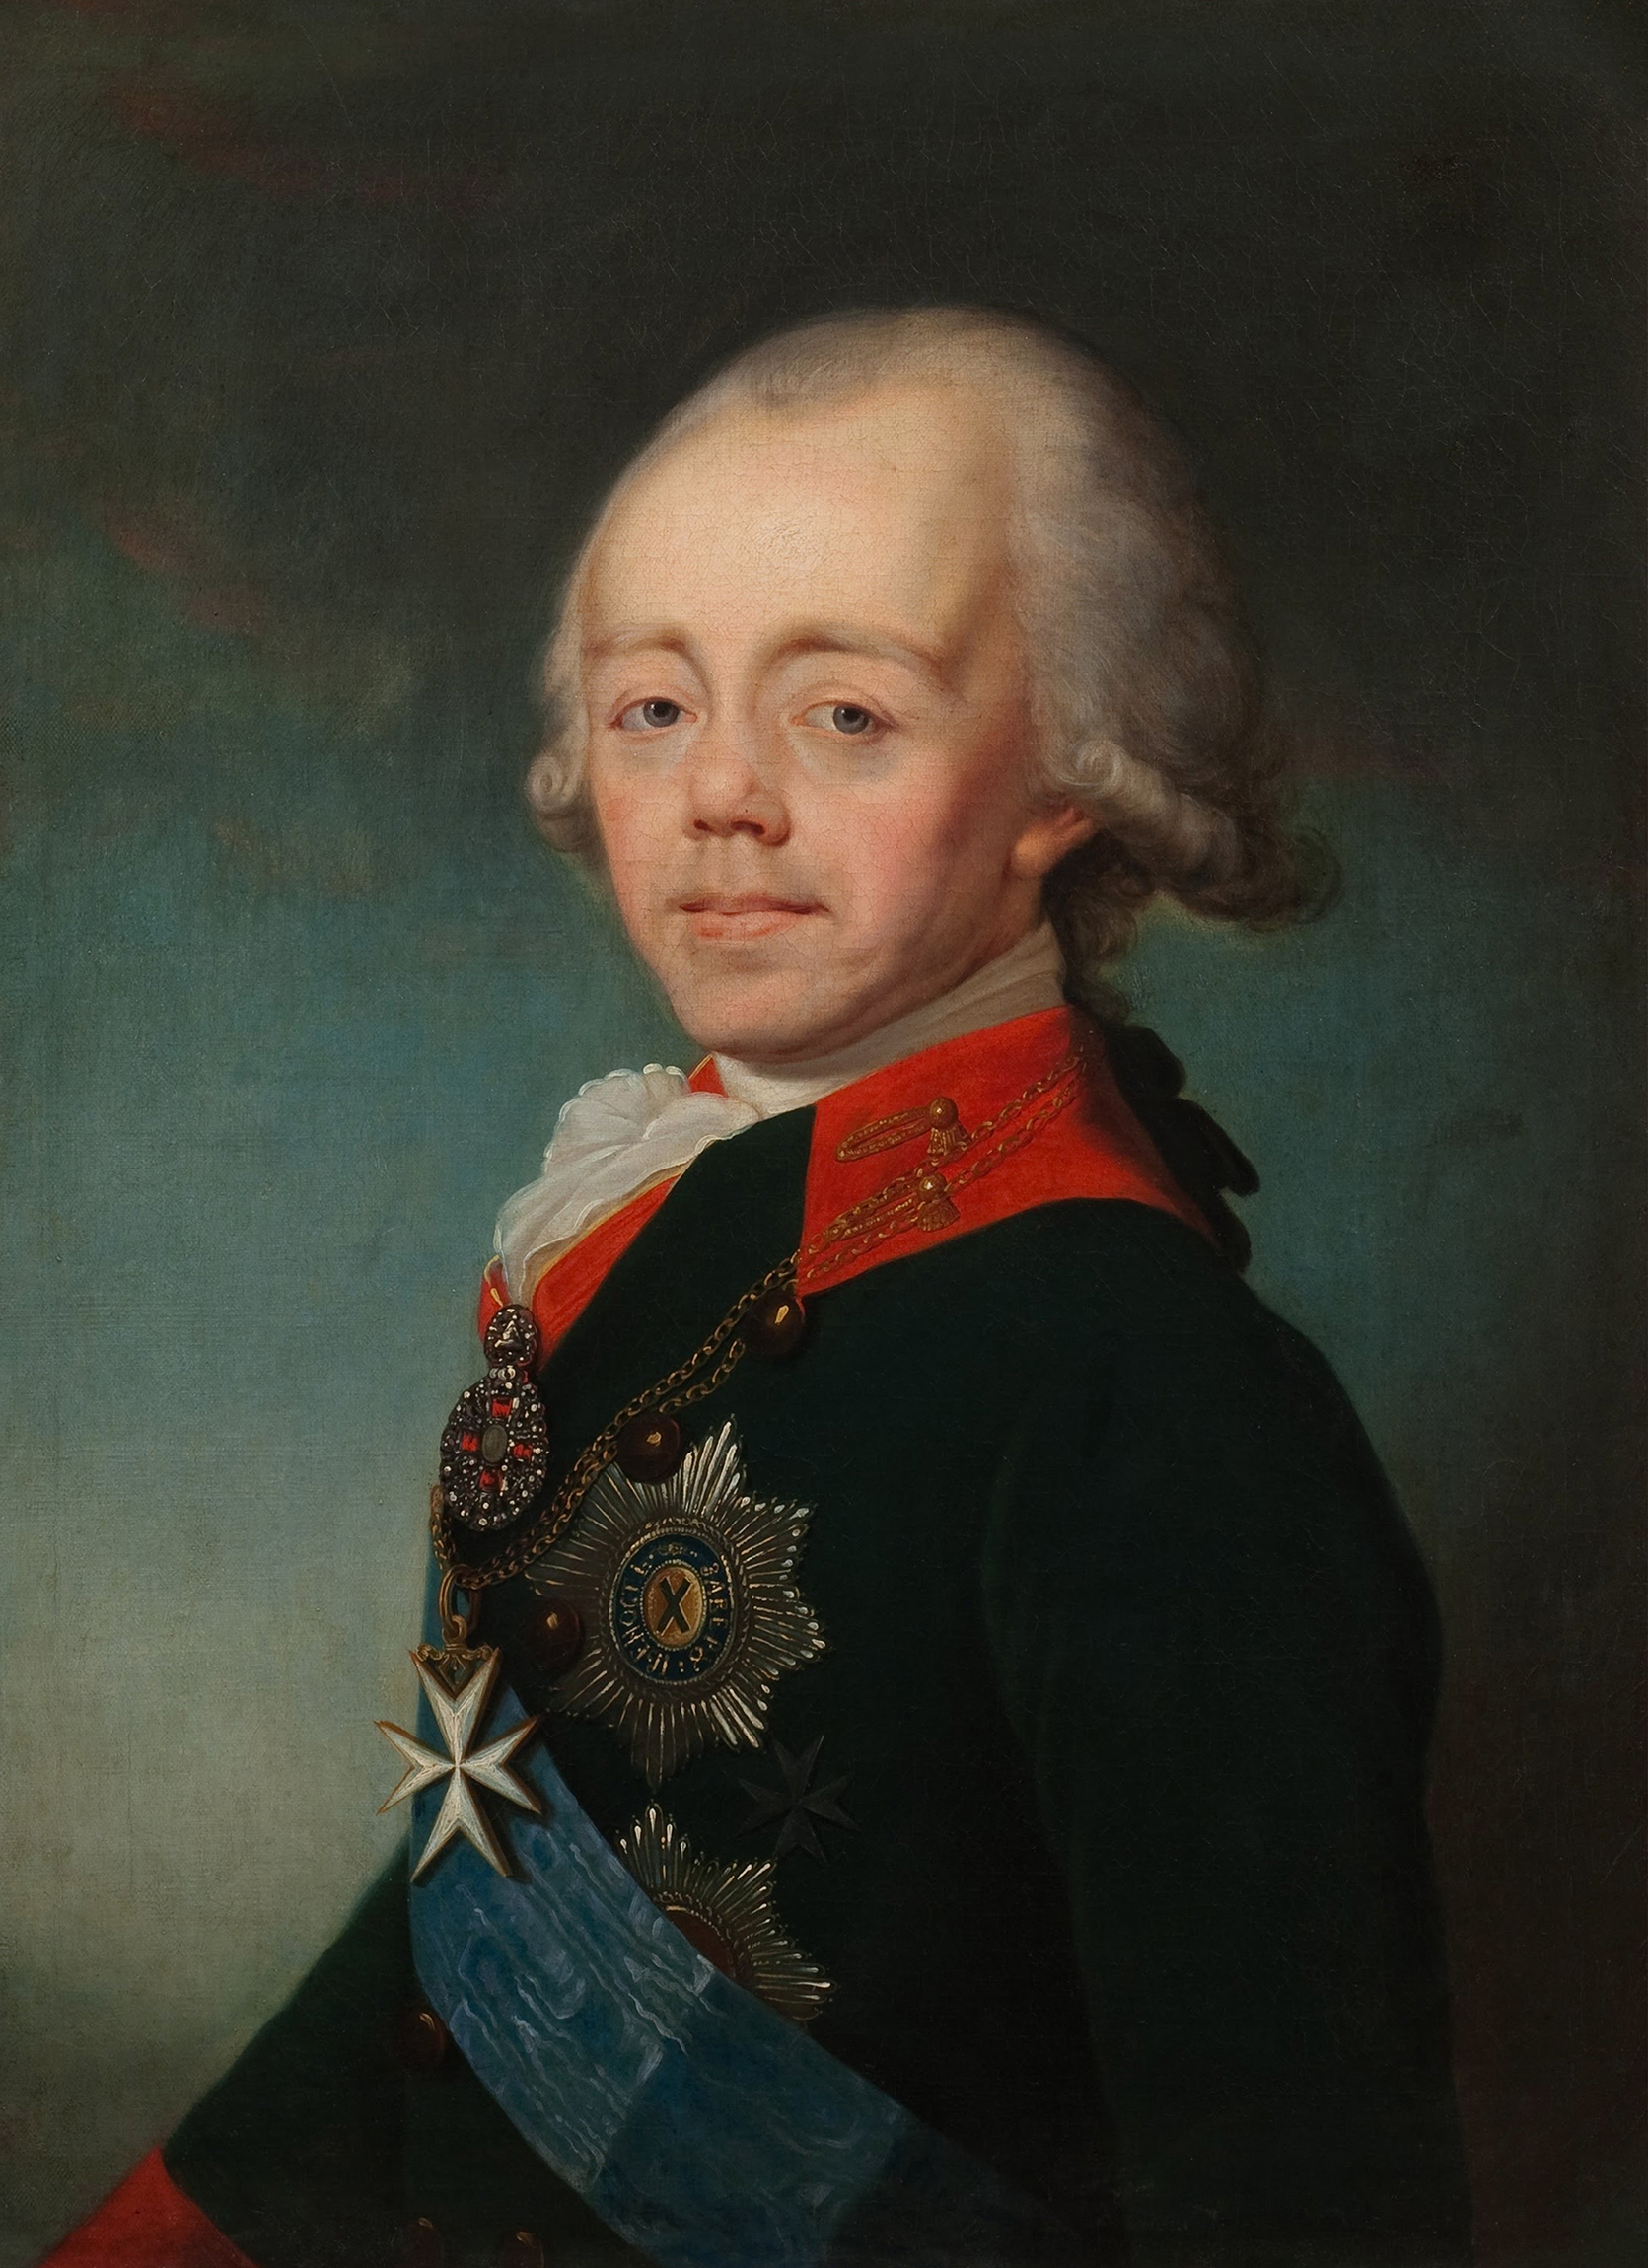 Portrait of Paul I (1754-1801), Grand Duke, Tsesarevich, Crown prince of Russia (1761-1796), Emperor of Russia (1796-1801), 1798 | Portraits of Kings